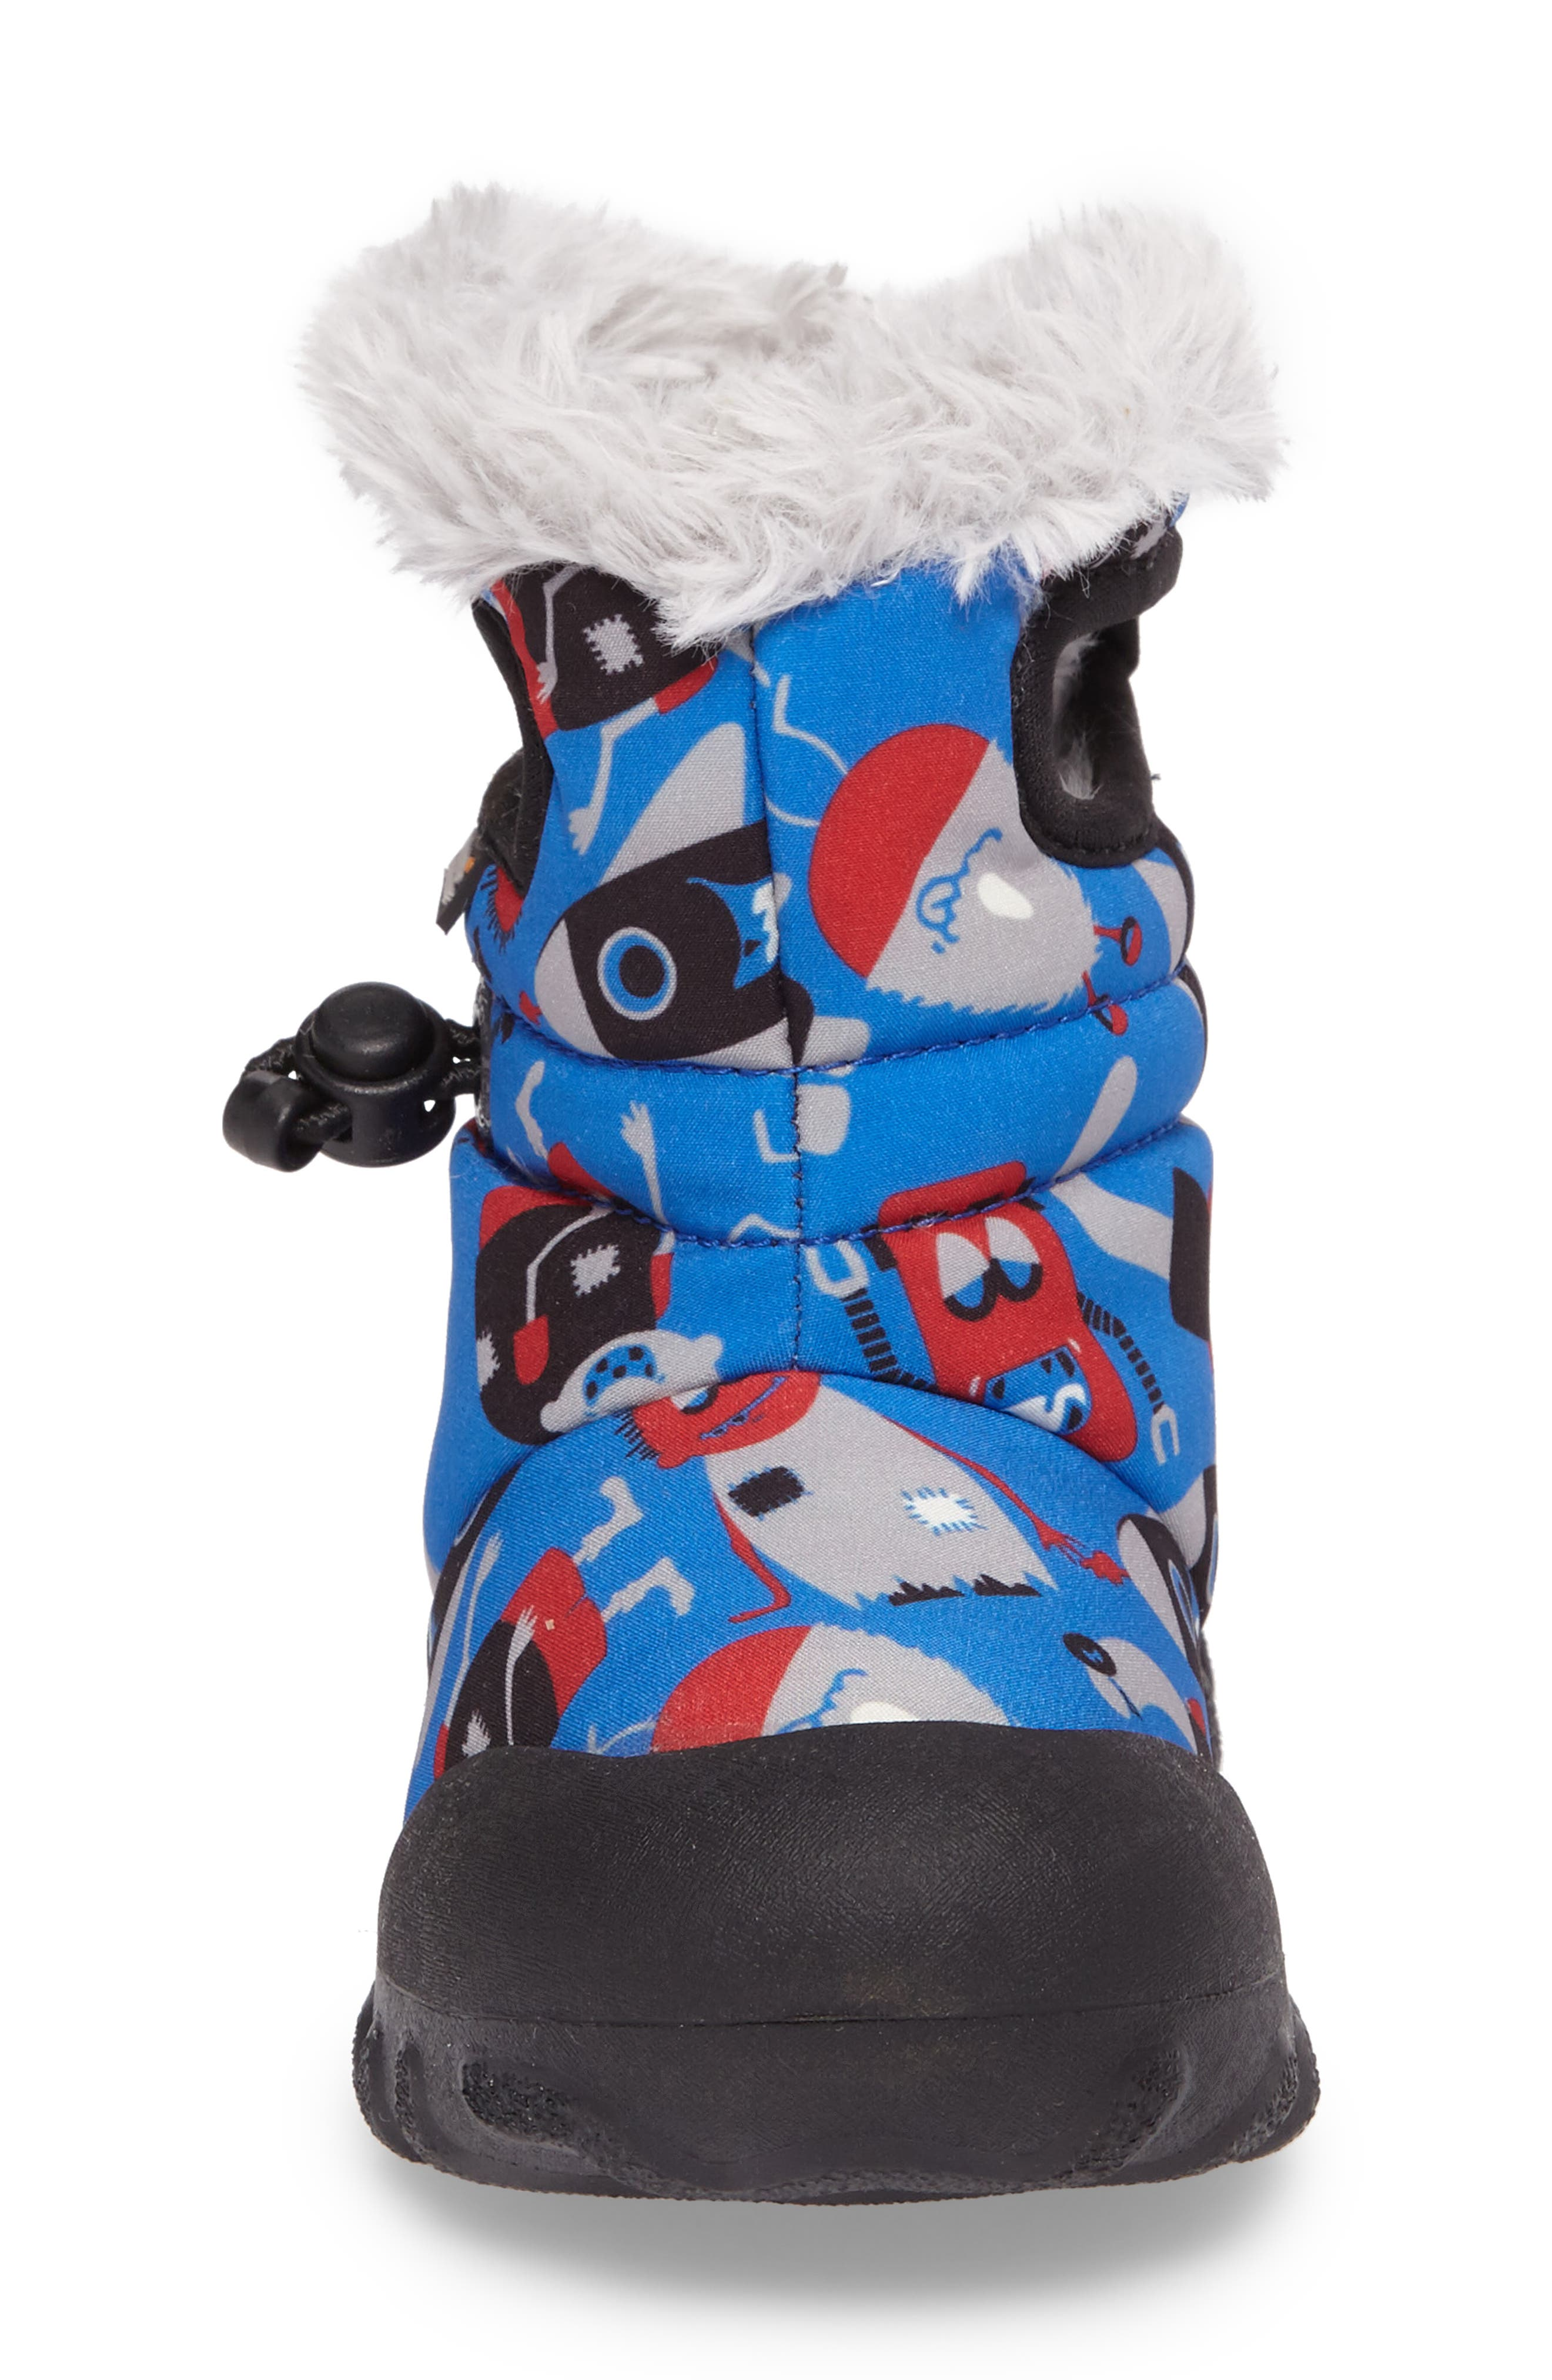 B-MOC Monsters Waterproof Insulated Faux Fur Winter Boot,                             Alternate thumbnail 4, color,                             409